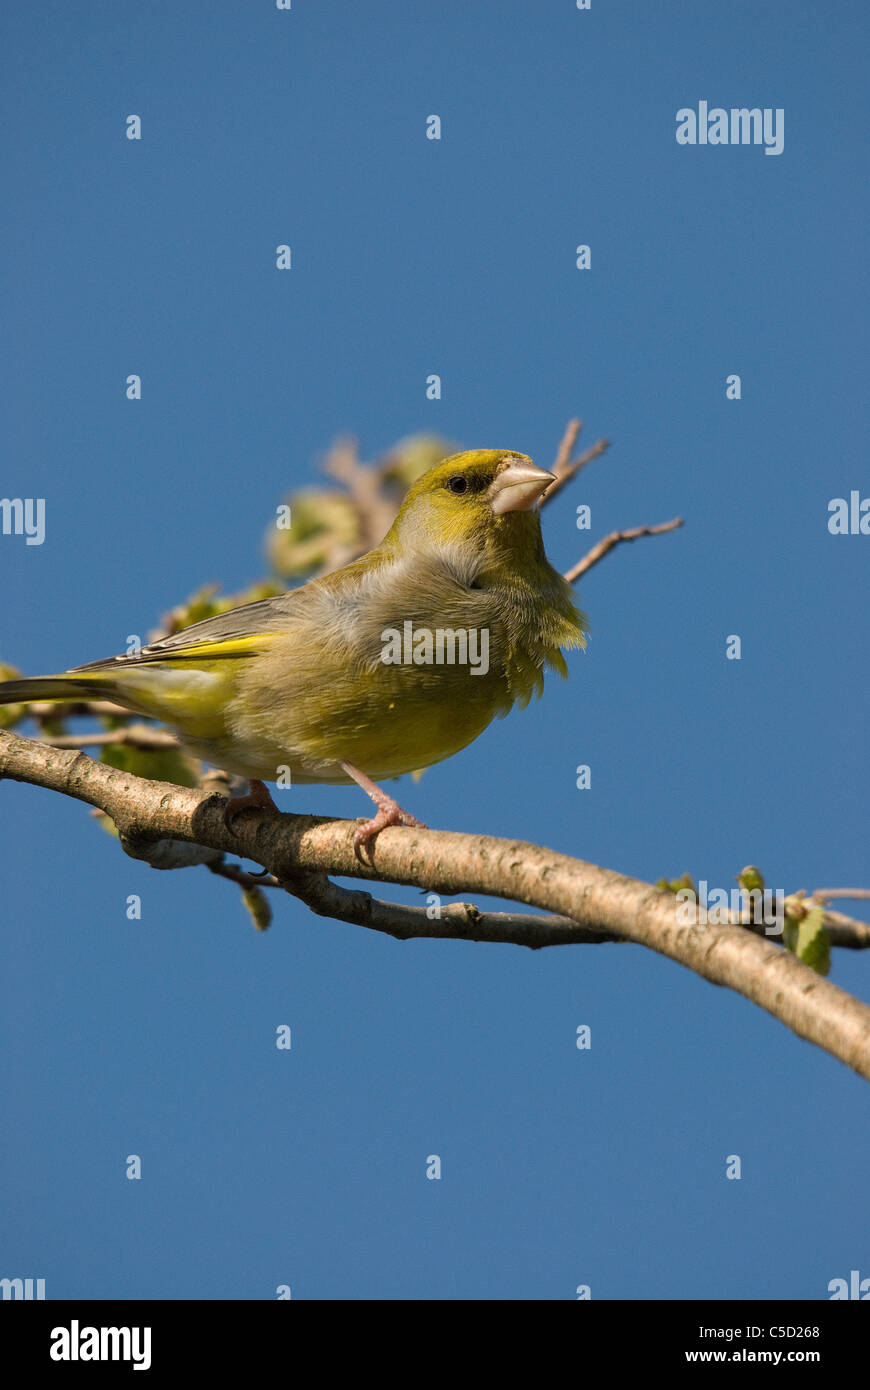 Greenfinch against a blue background. Feathers ruffled by the wind - Stock Image